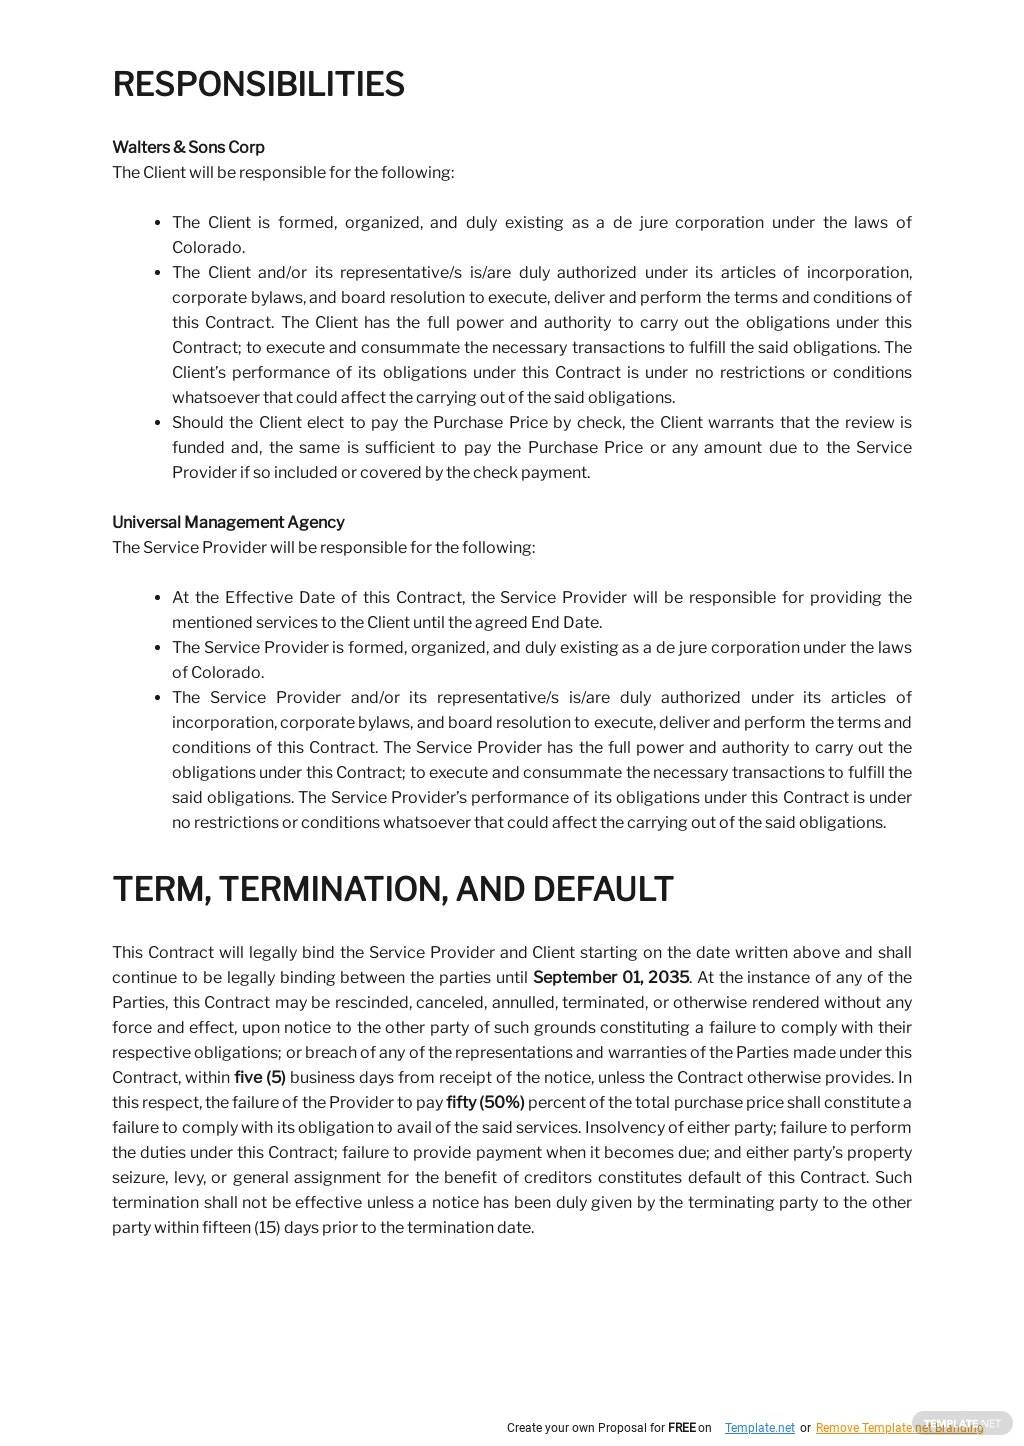 Service Agreement Contract Template 2.jpe